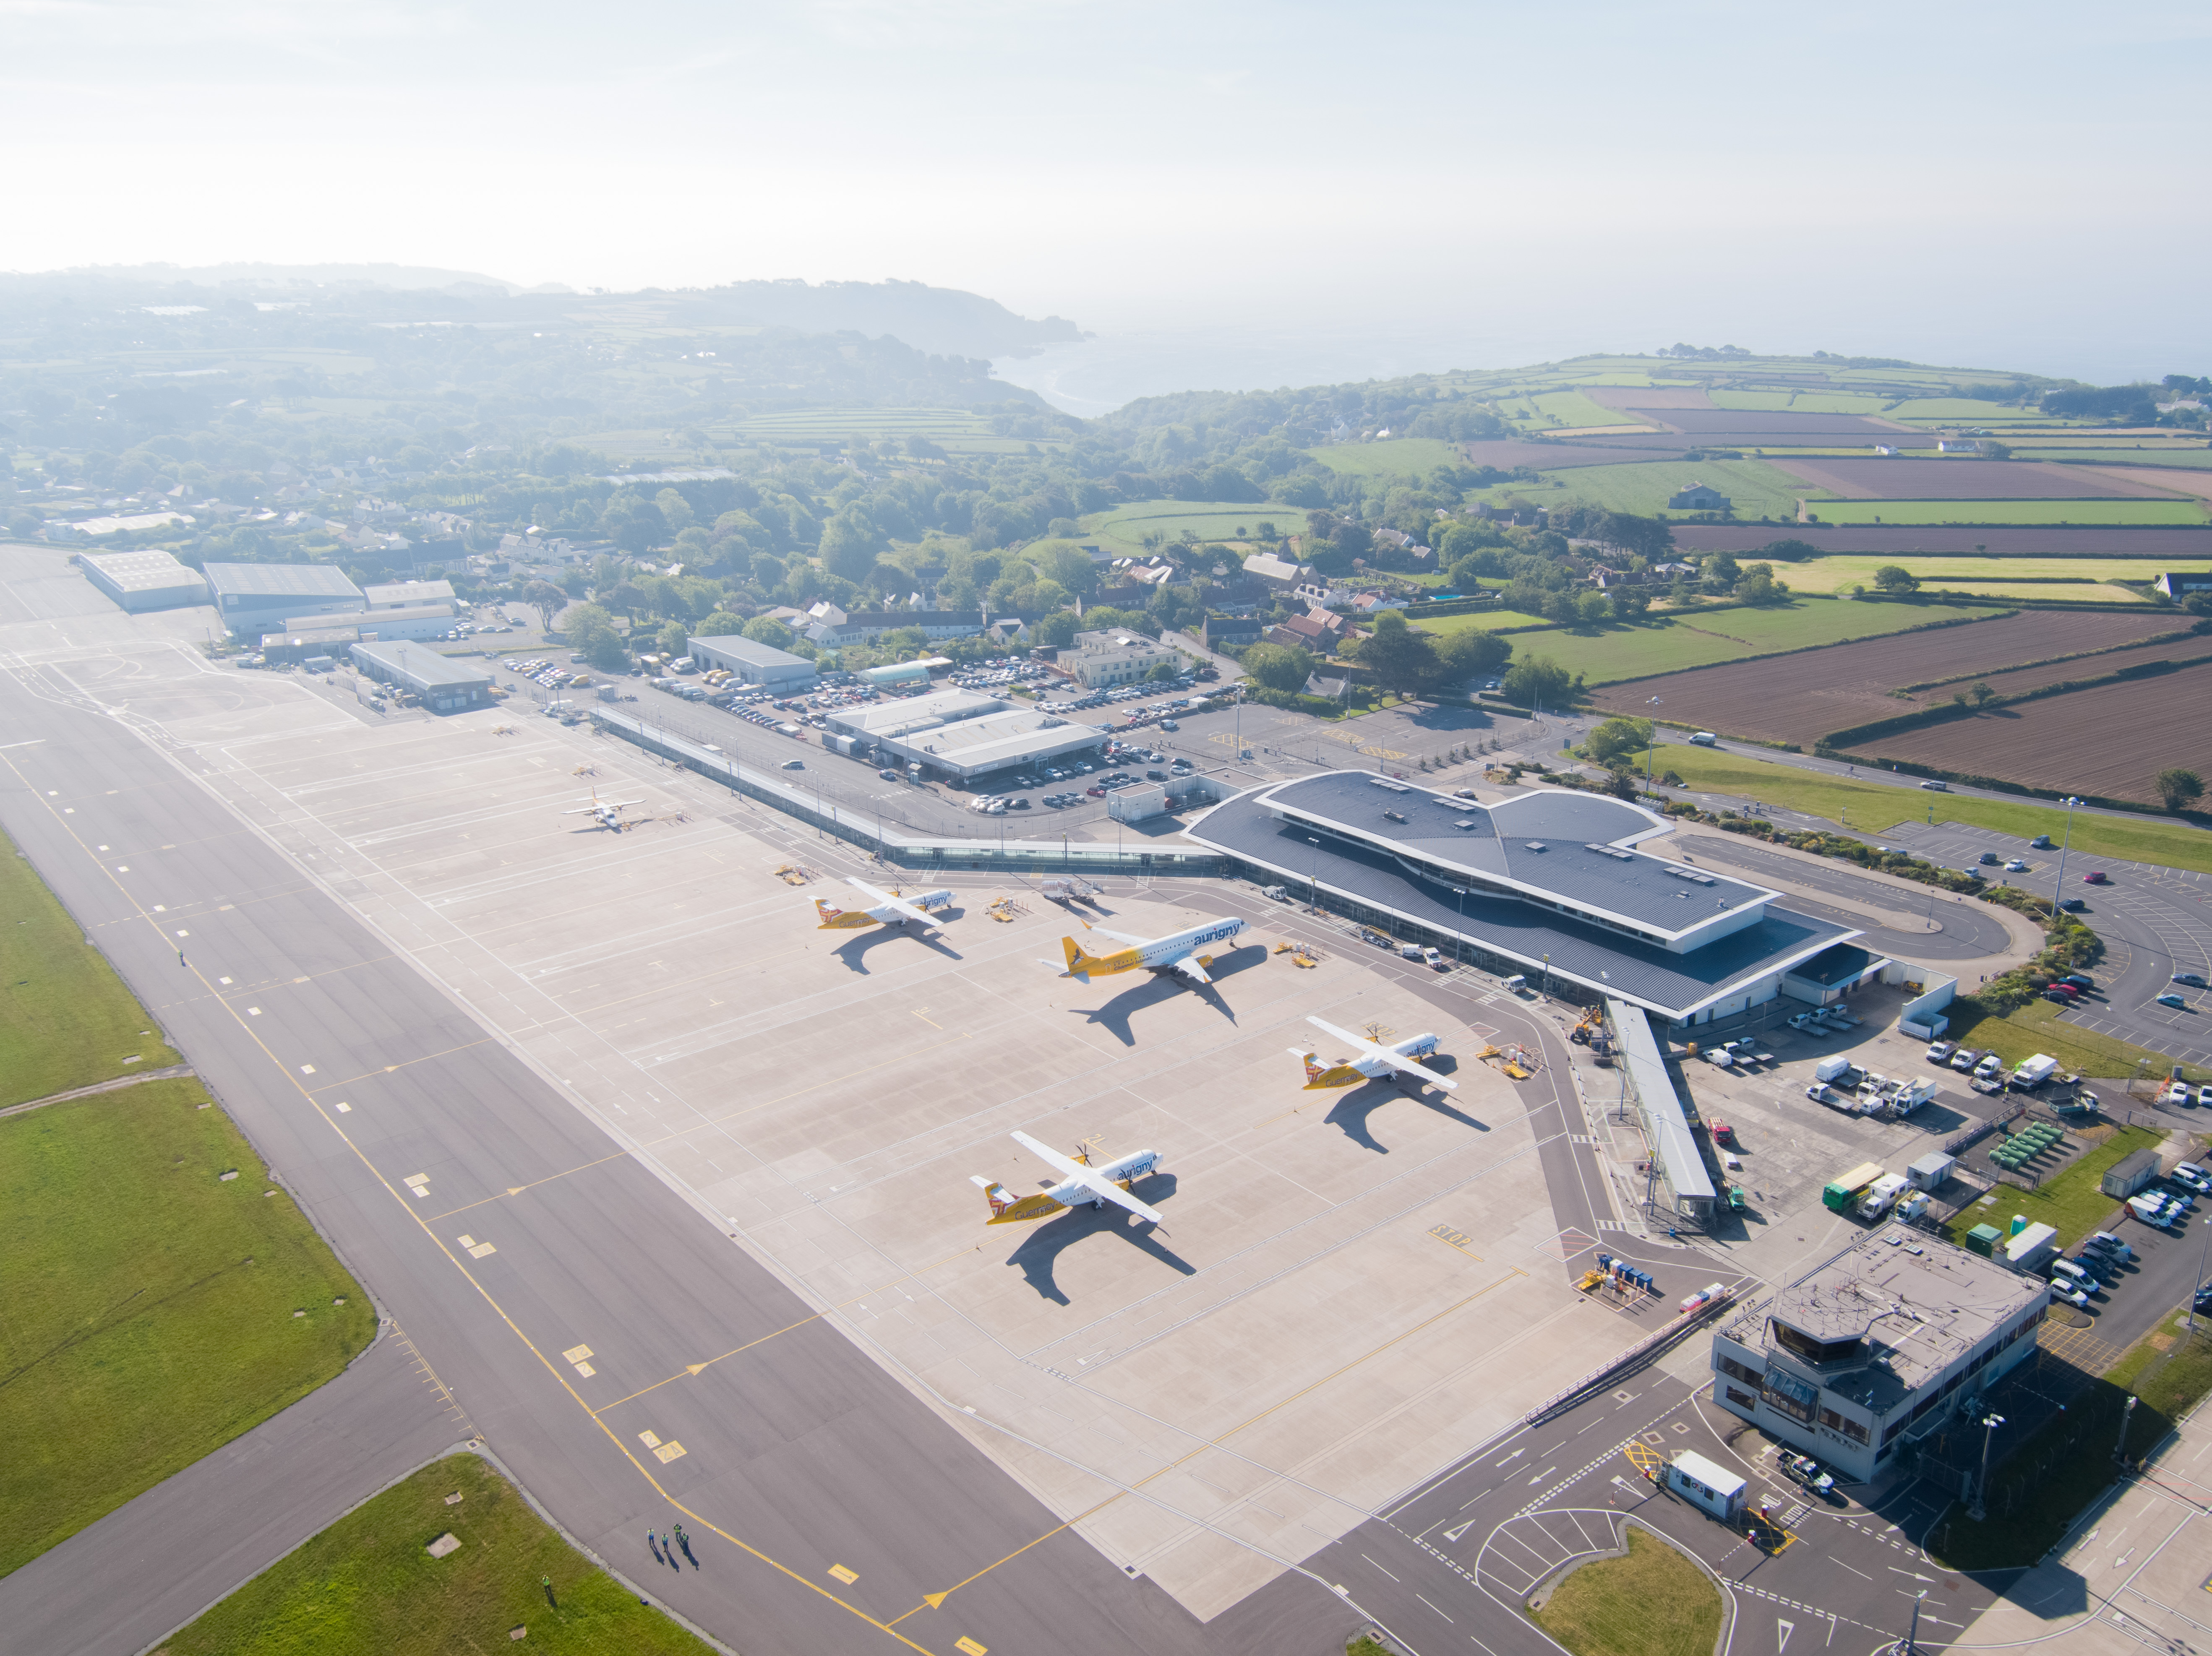 Link opens the aviation forecast for Channel Islands airspace provided by Jersey Met